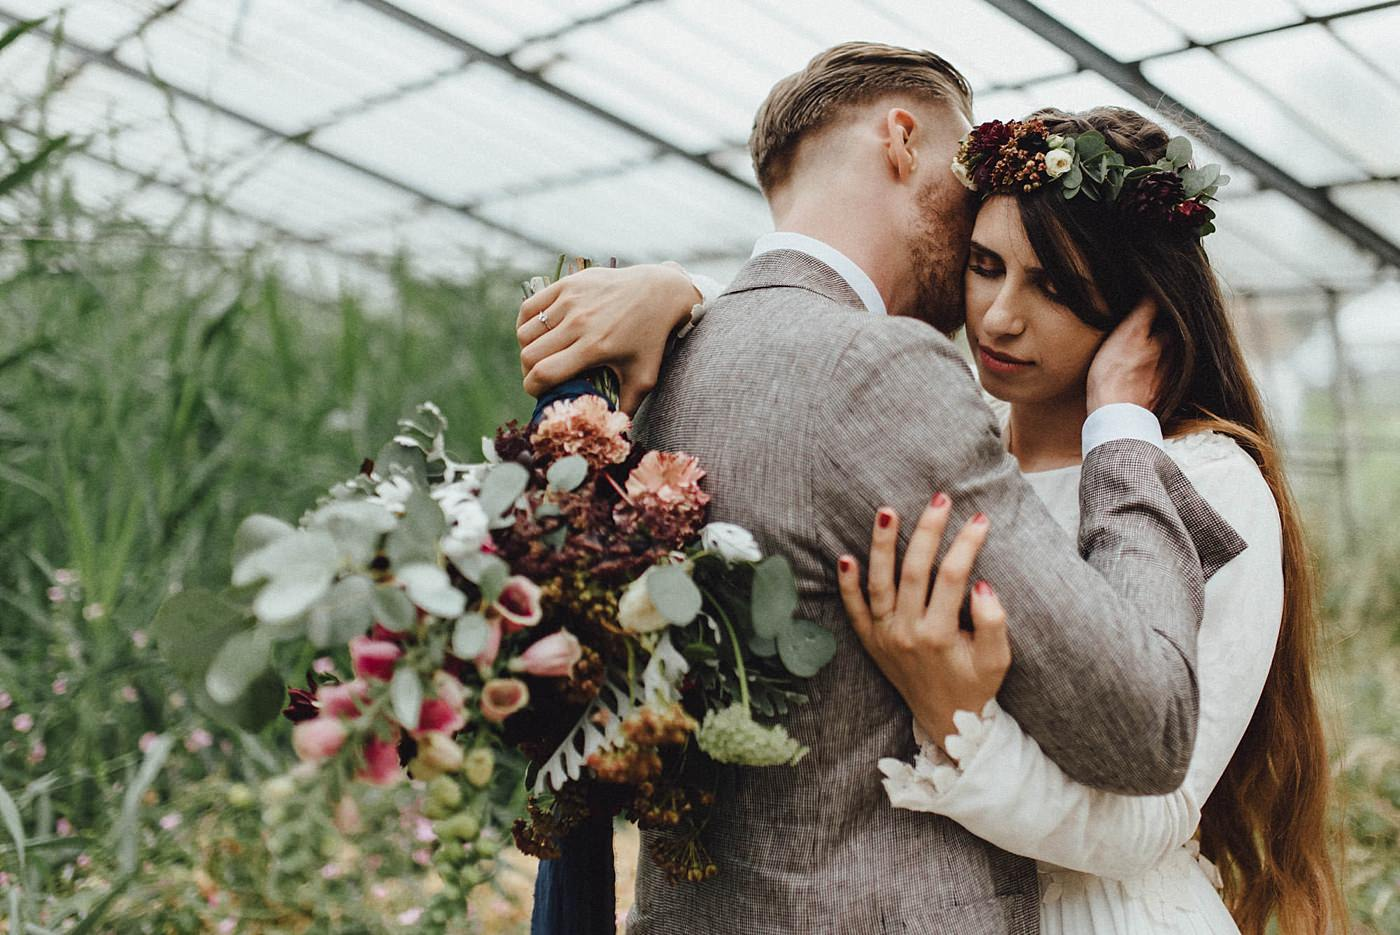 urban-elopement-wedding-192 Merve & Nils emotionales Elopement - Wedding Wesel & Schottlandurban elopement wedding 192 1